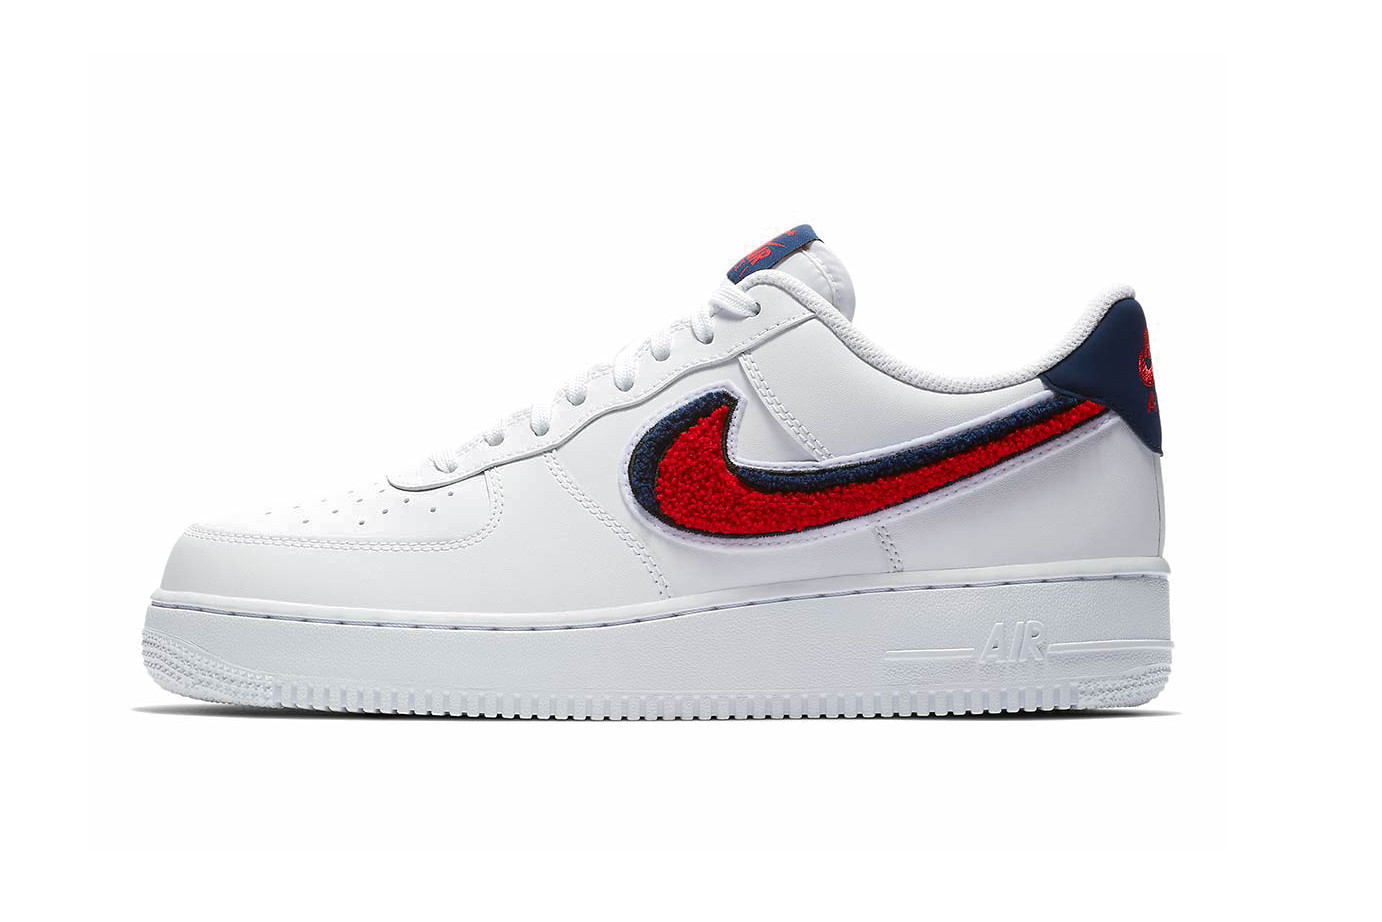 nike air force 1 blue and red